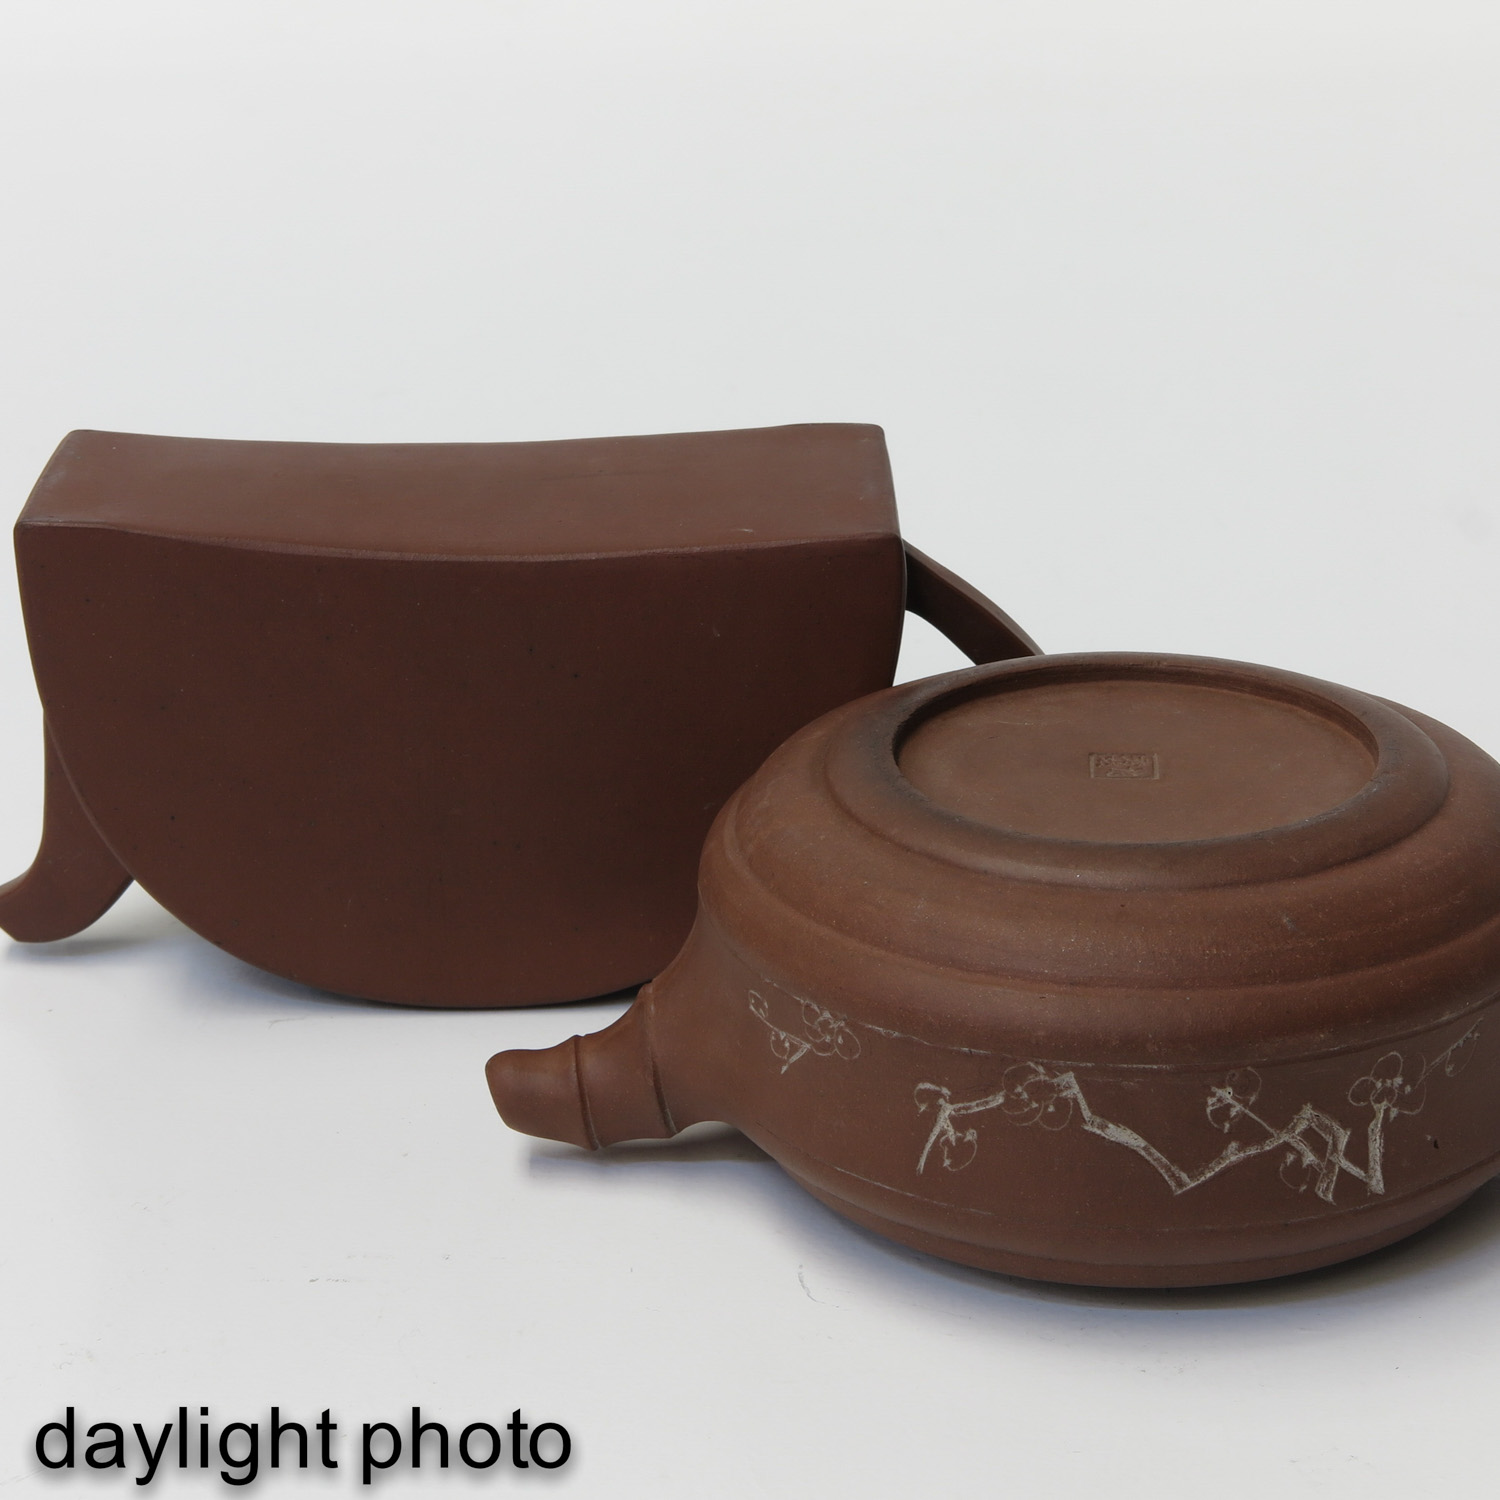 A Lot of 2 Yixing Teapots - Image 8 of 9